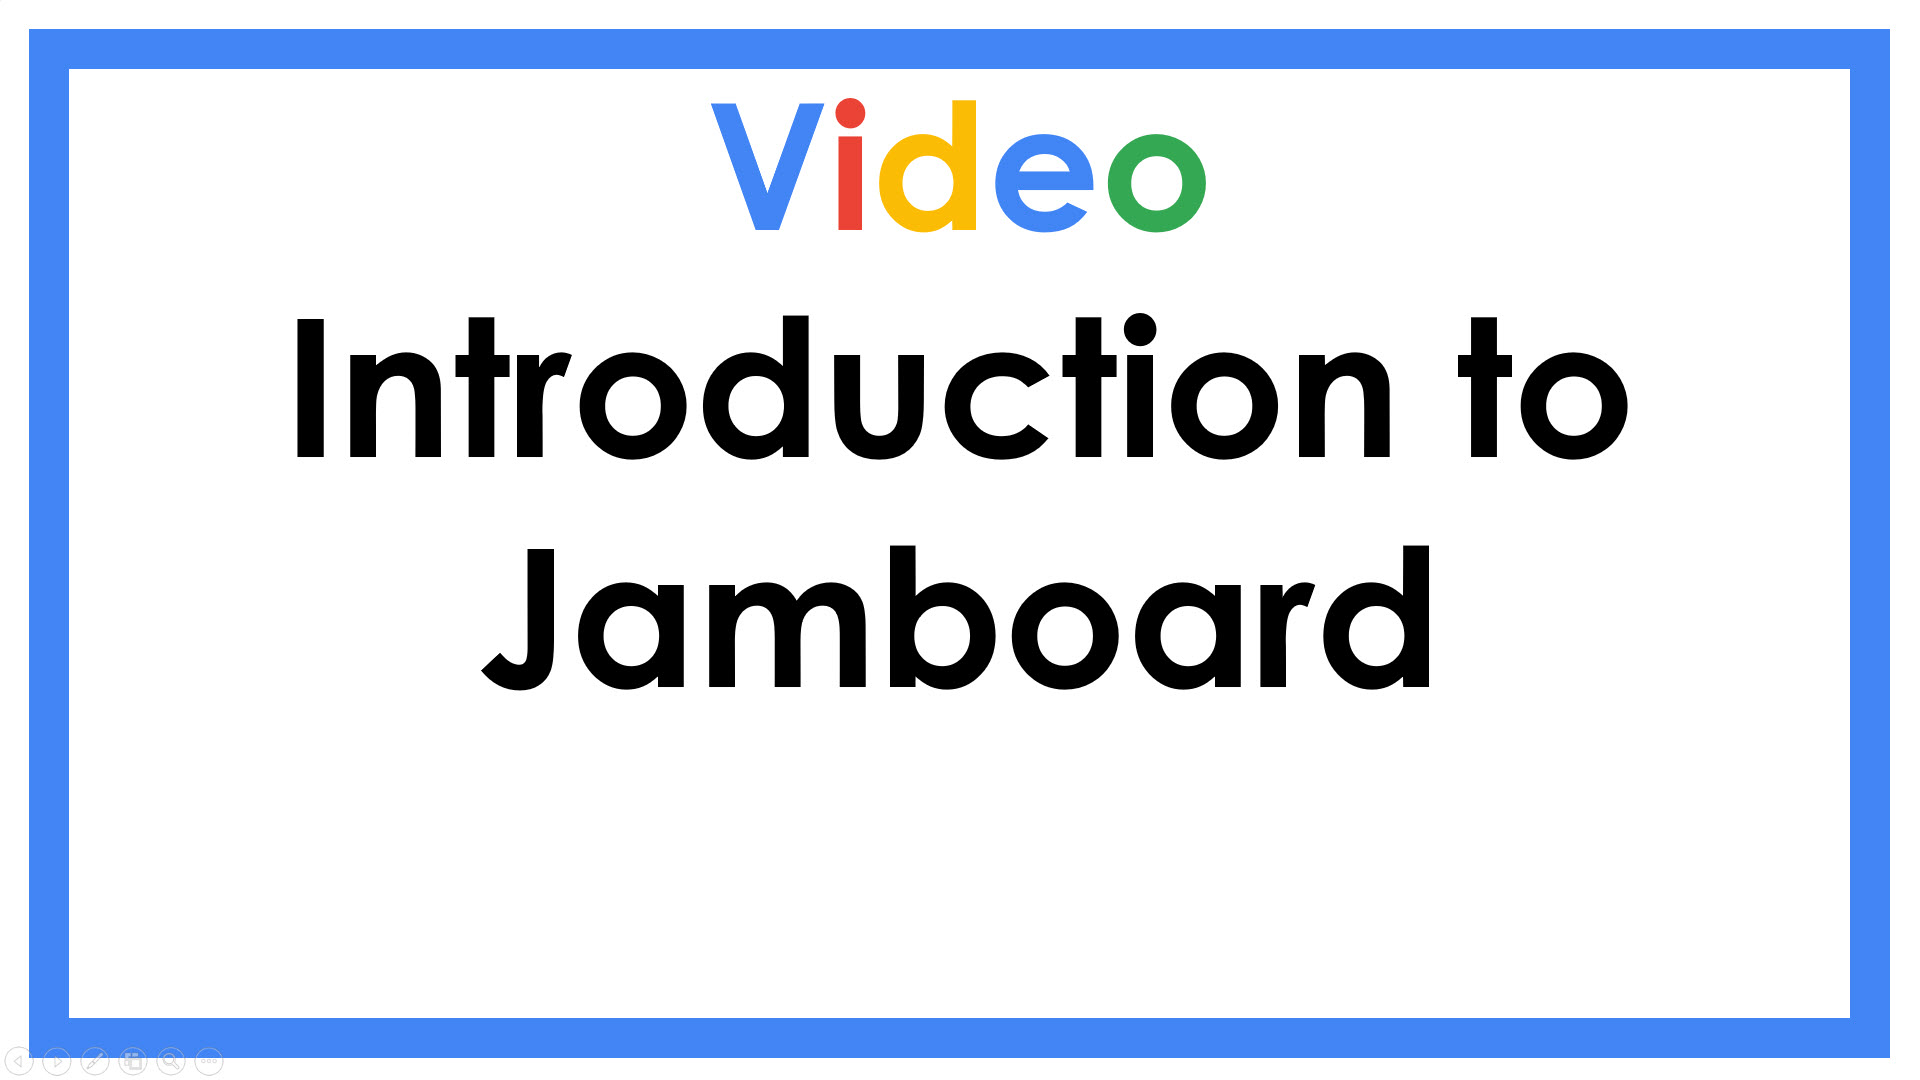 Introduction to Jamboard